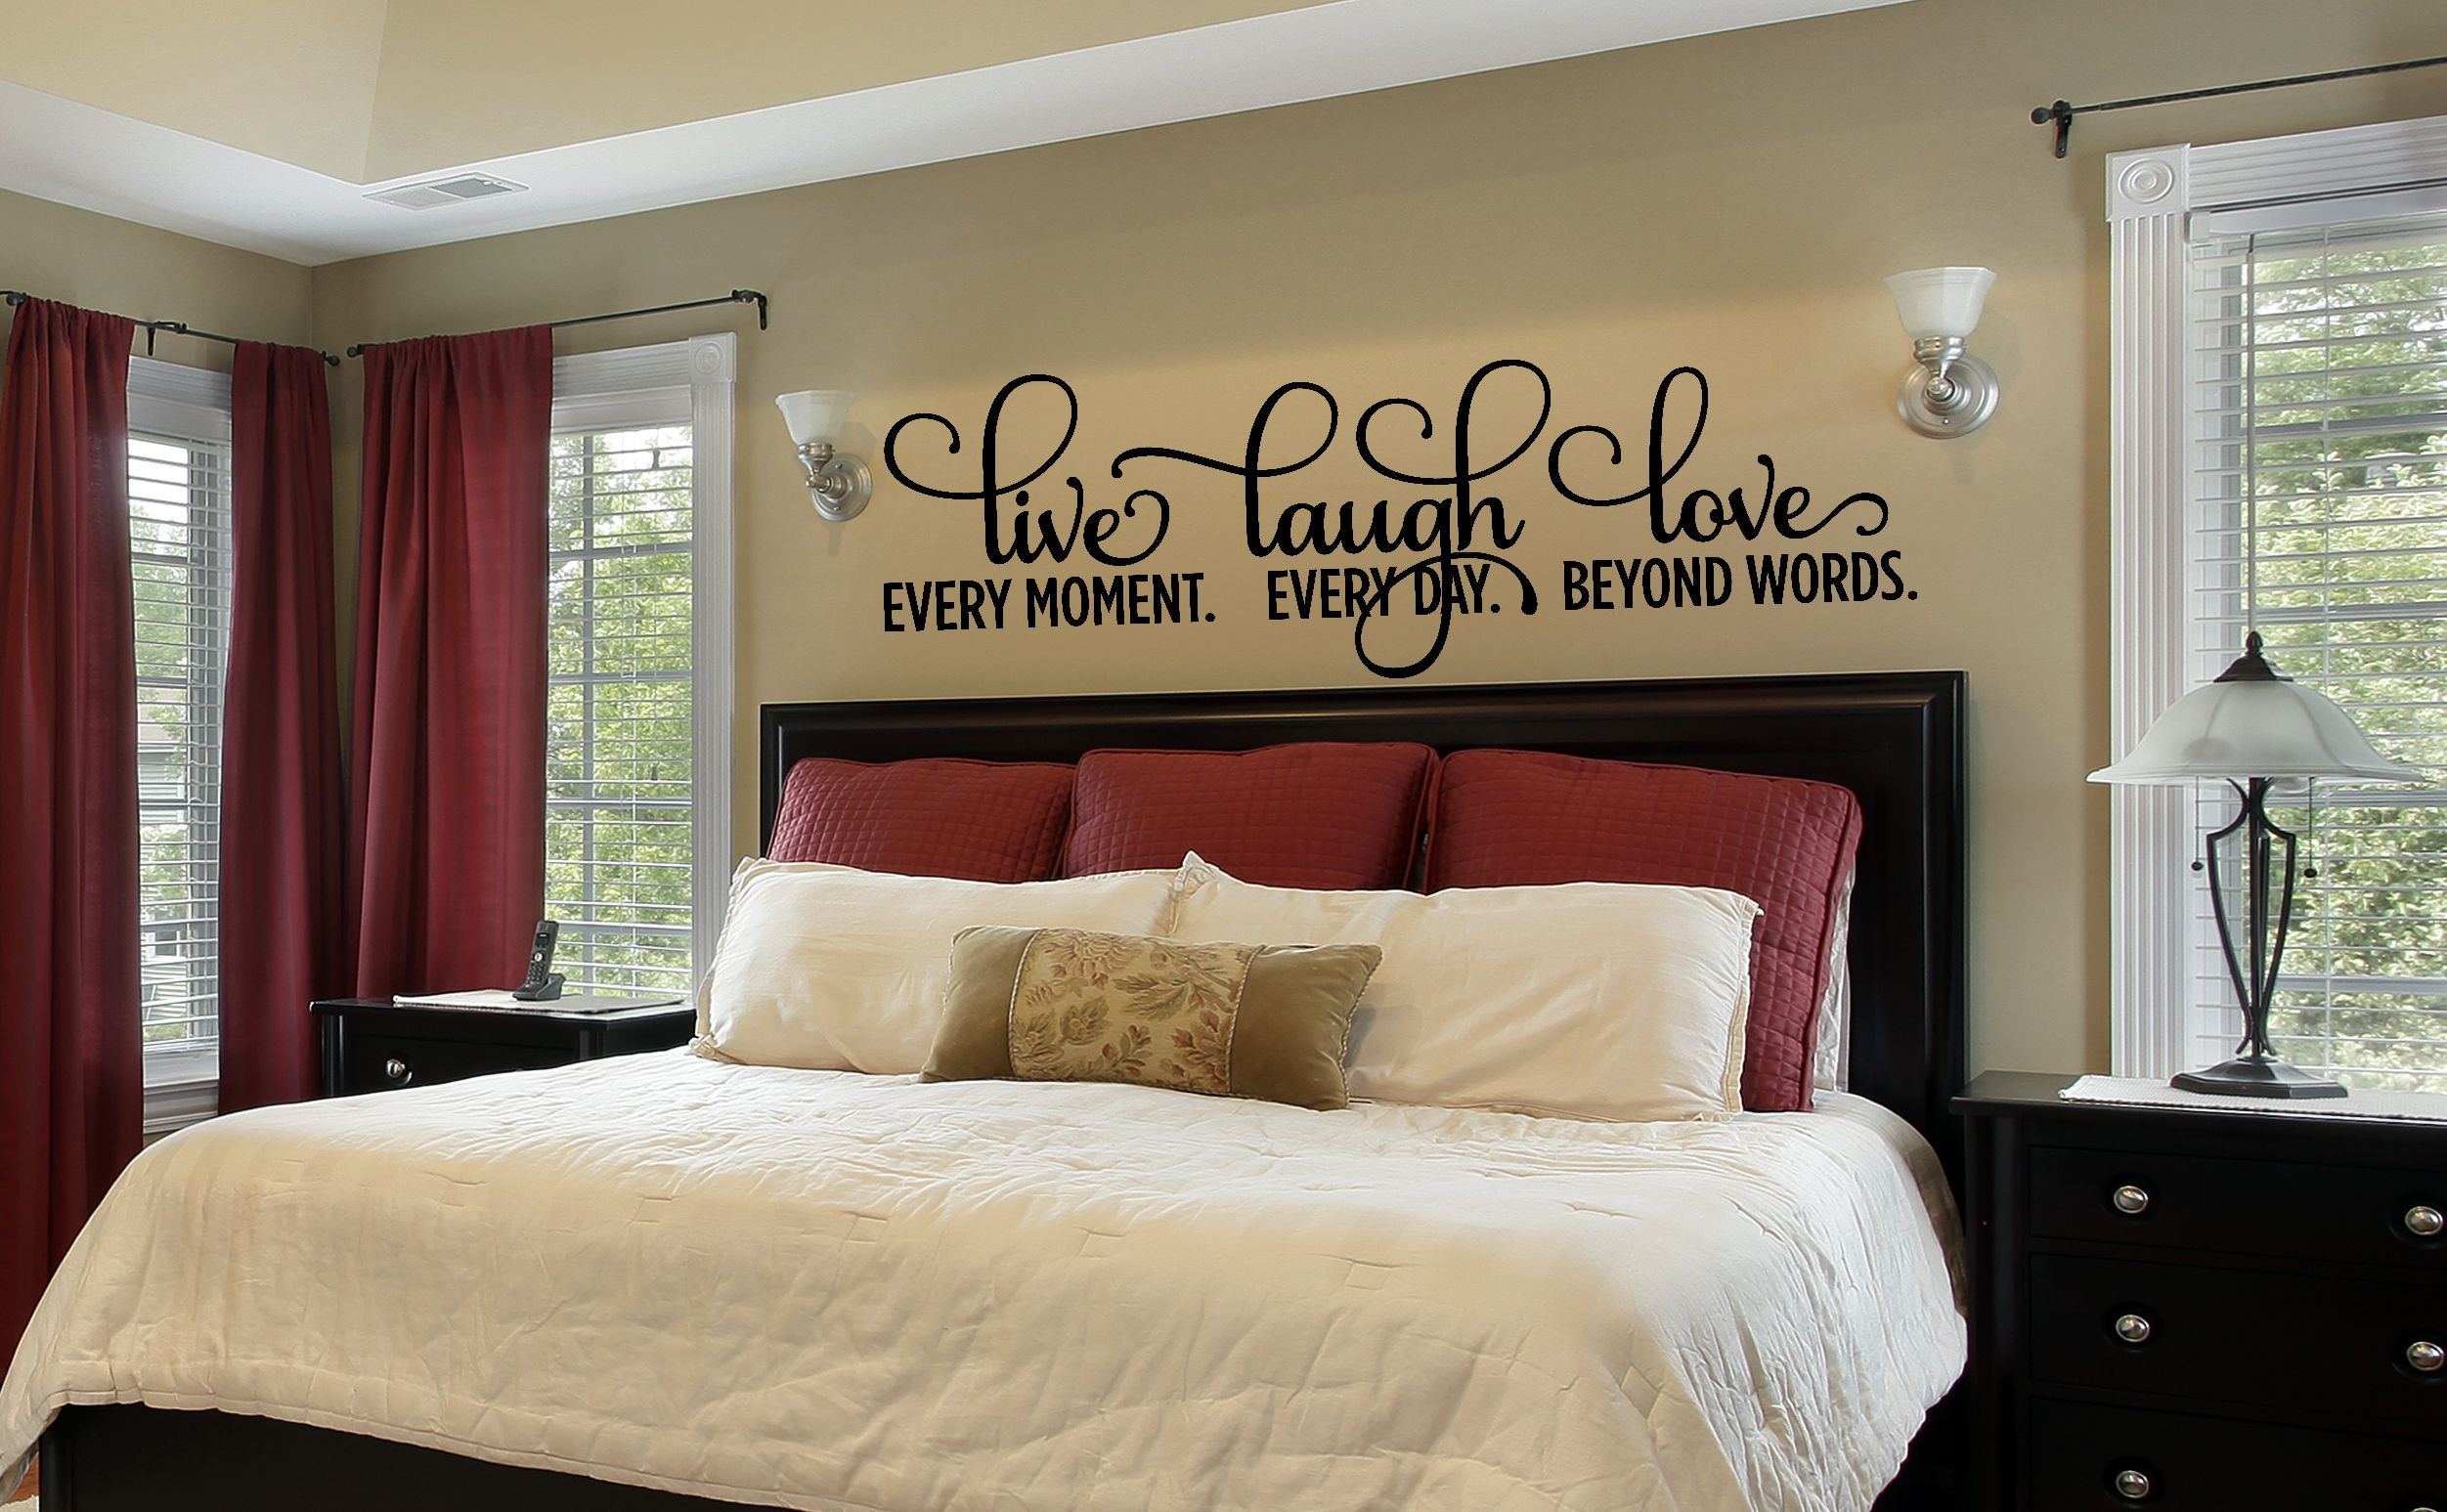 bedroom decor bedroom wall decal master bedroom wall decal 17739 | il fullxfull 1451969838 2nw2